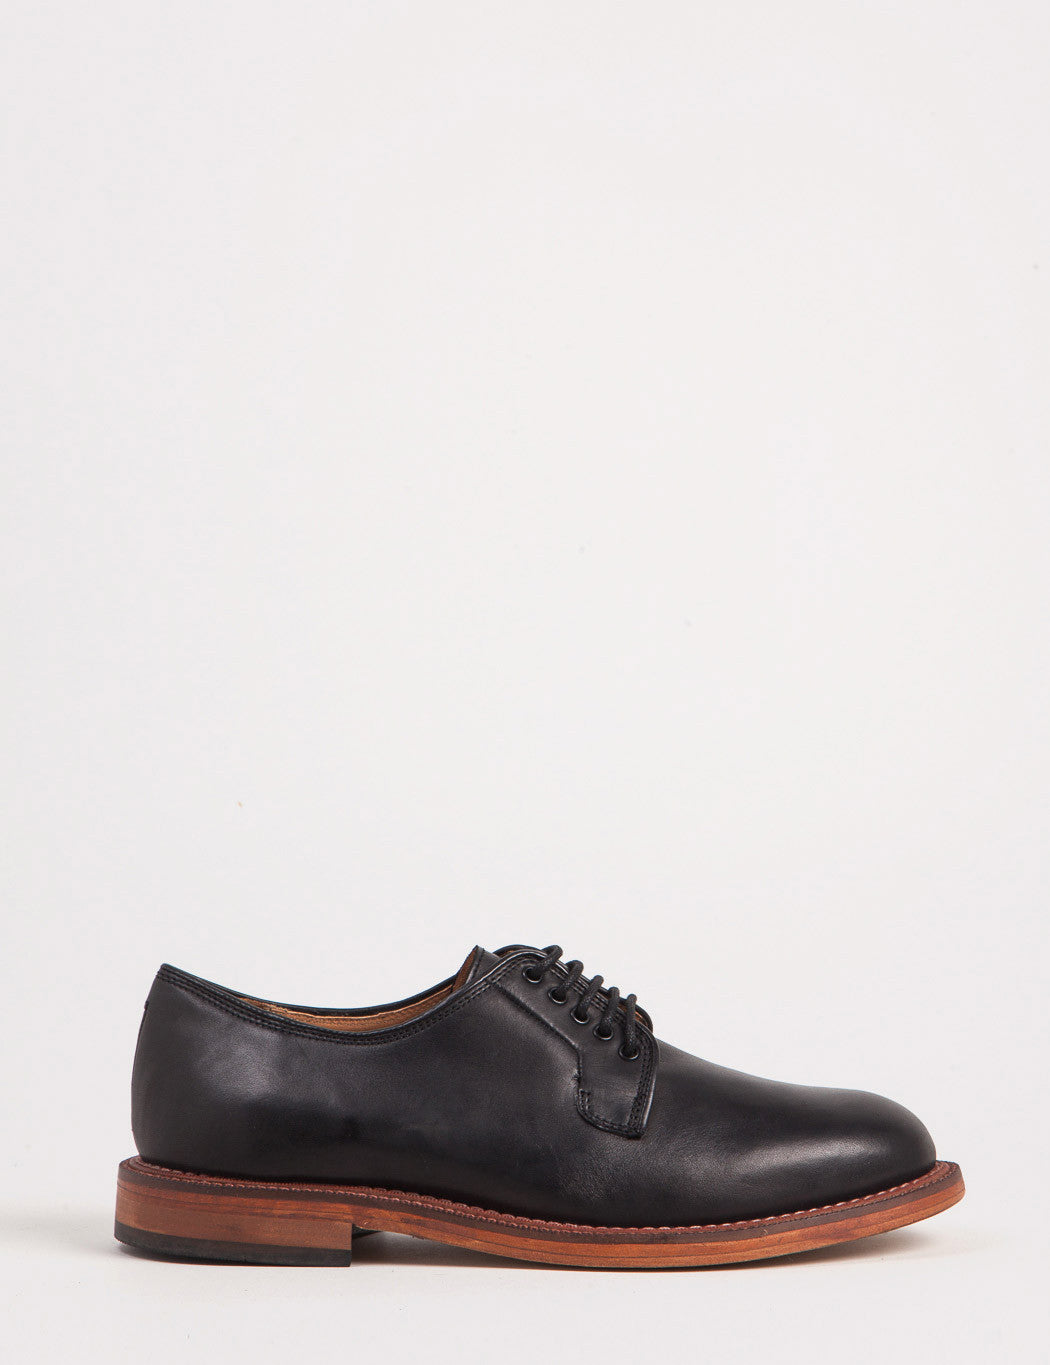 Hudson Daines Leather Shoes - Black